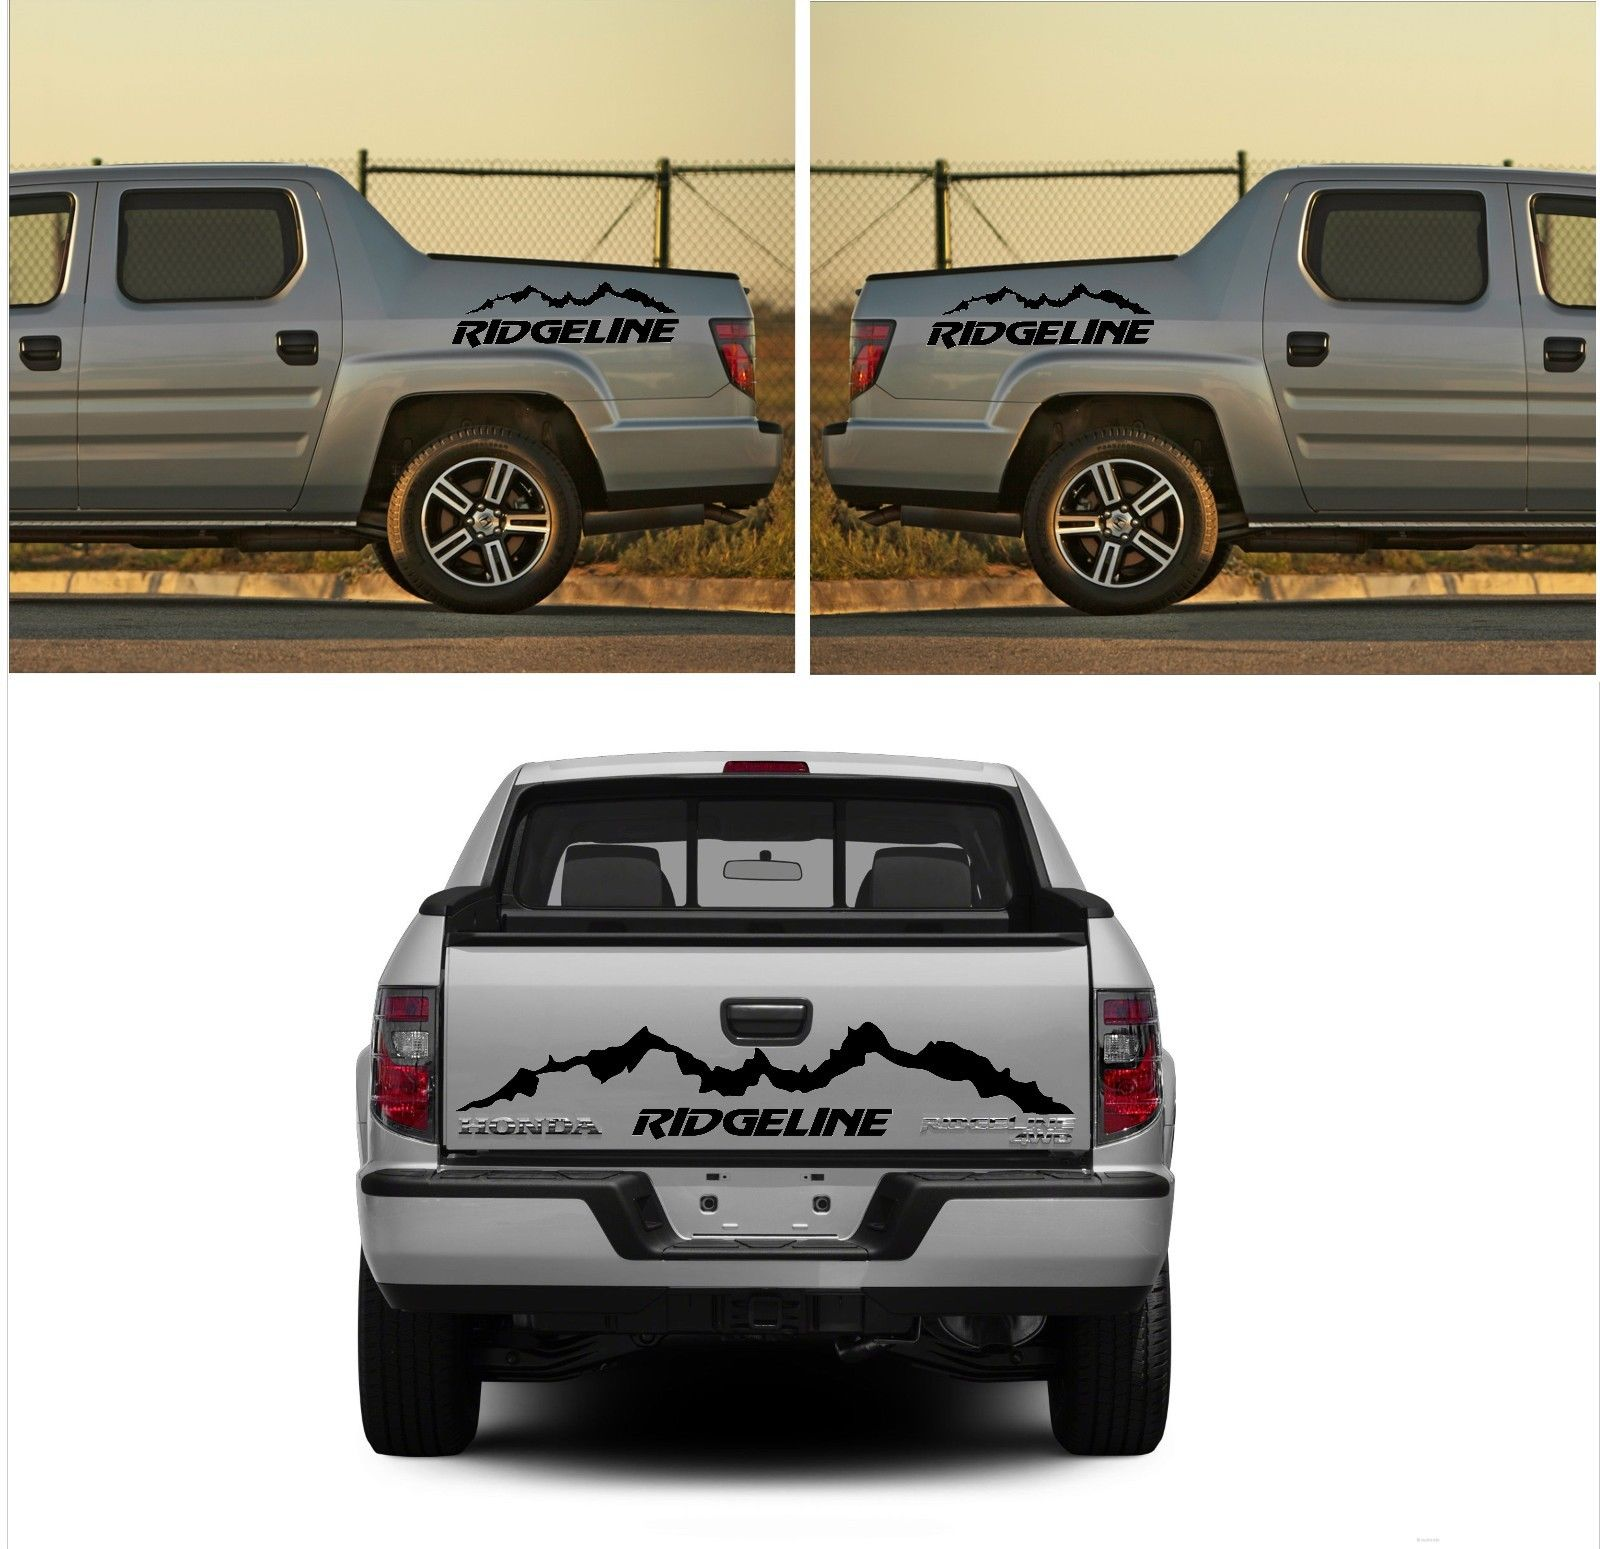 3x honda ridgeline rear and side vinyl body decal sticker graphics emblem logo